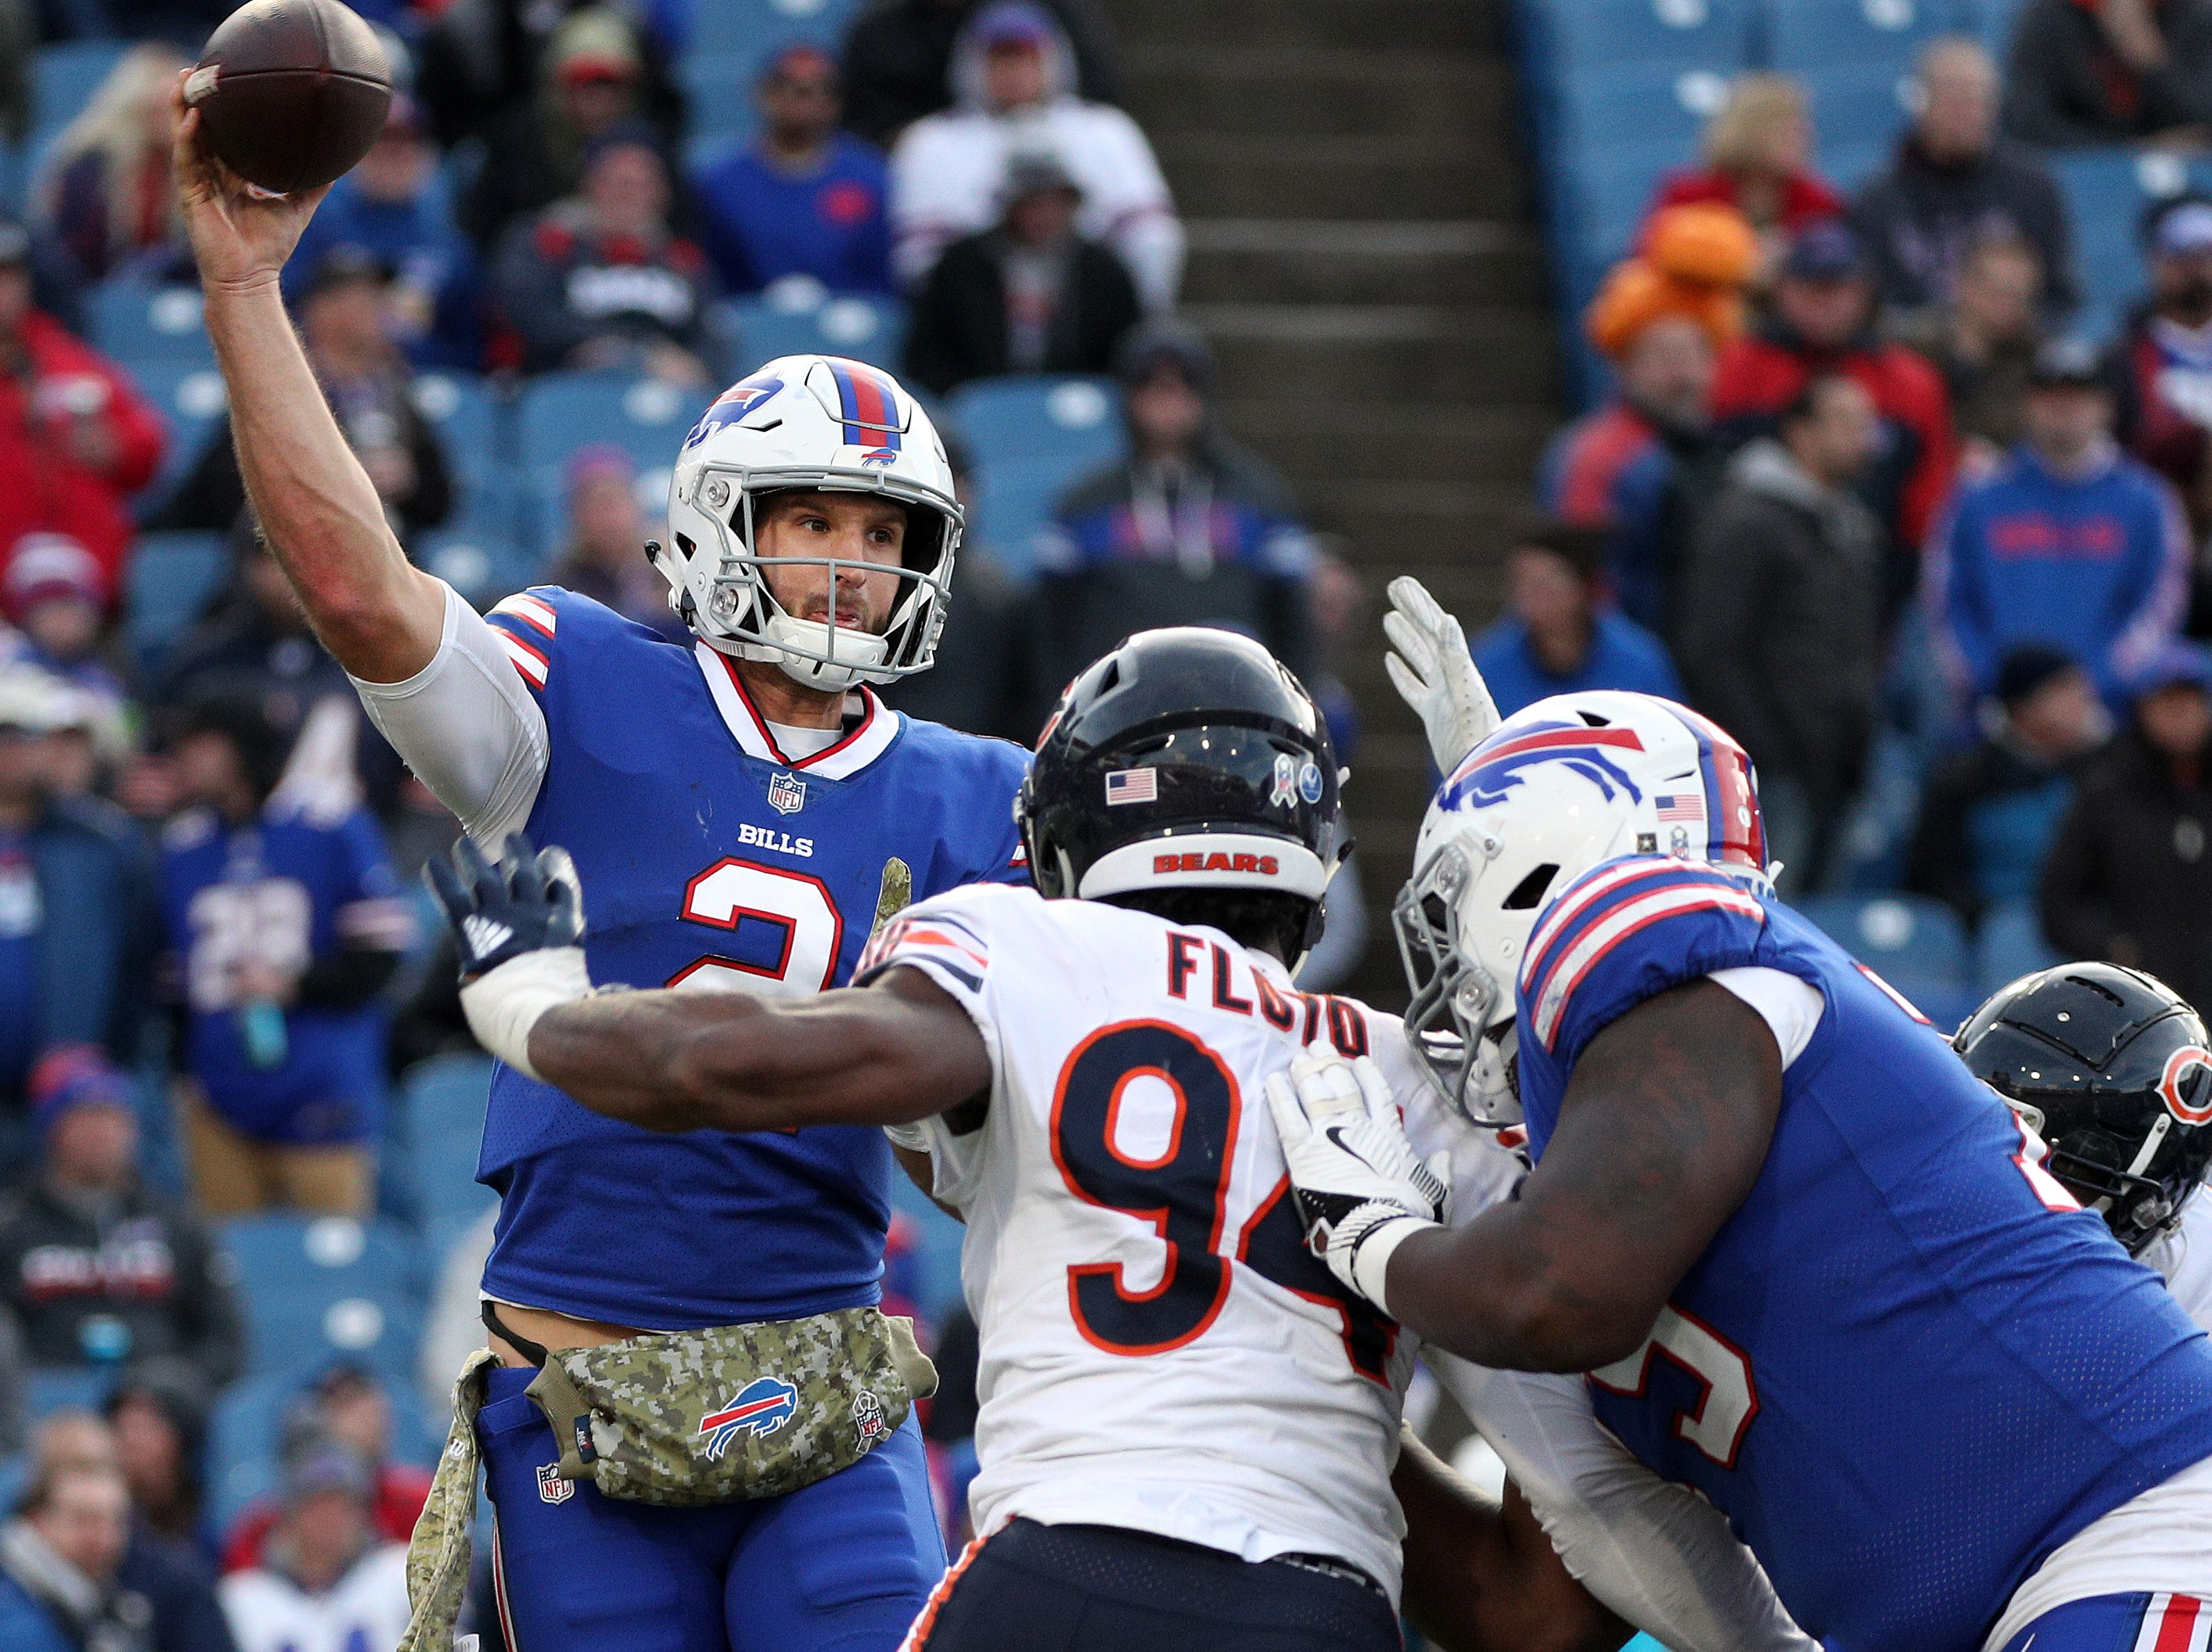 Bills quarterback Nathan Peterman looks for a short pass as he is pressured by Leonard Floyd of the Bears.